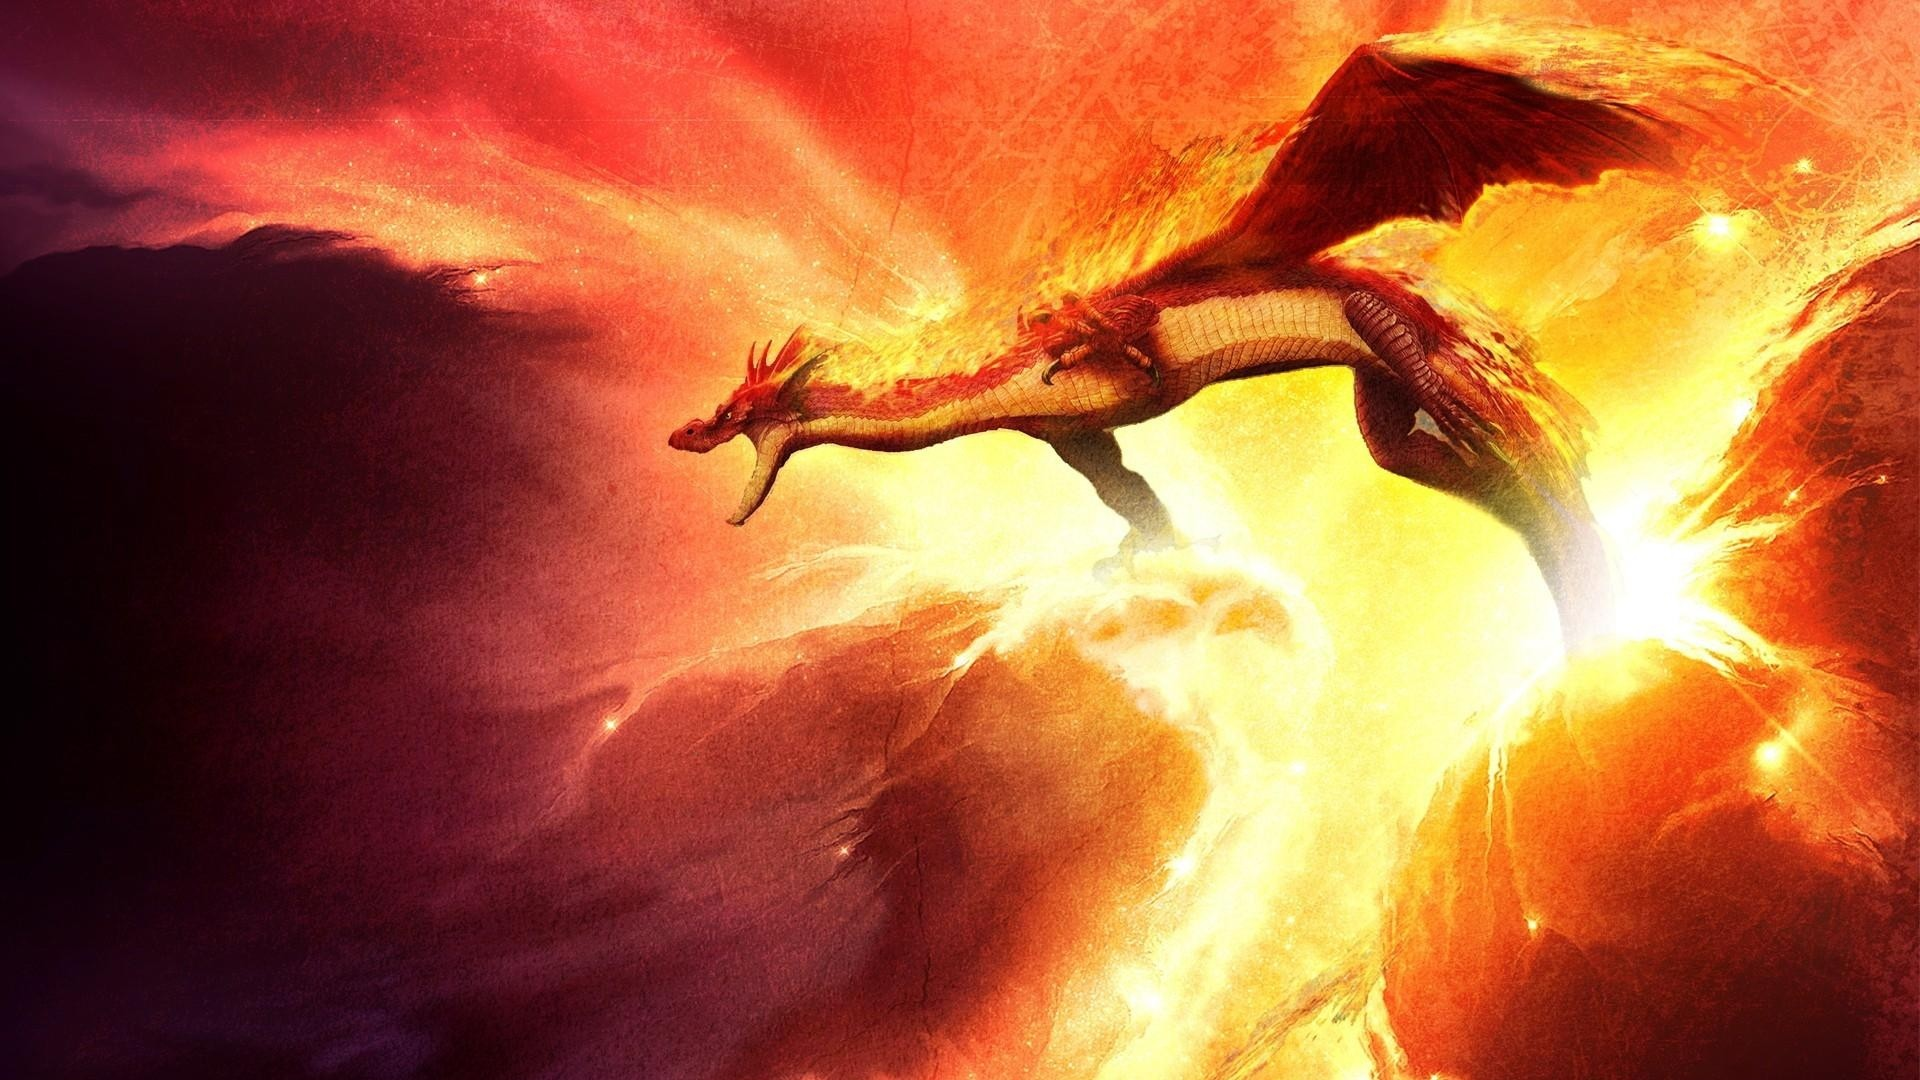 … Background Full HD 1080p. Wallpaper dragon, fire, sparkles,  mouth